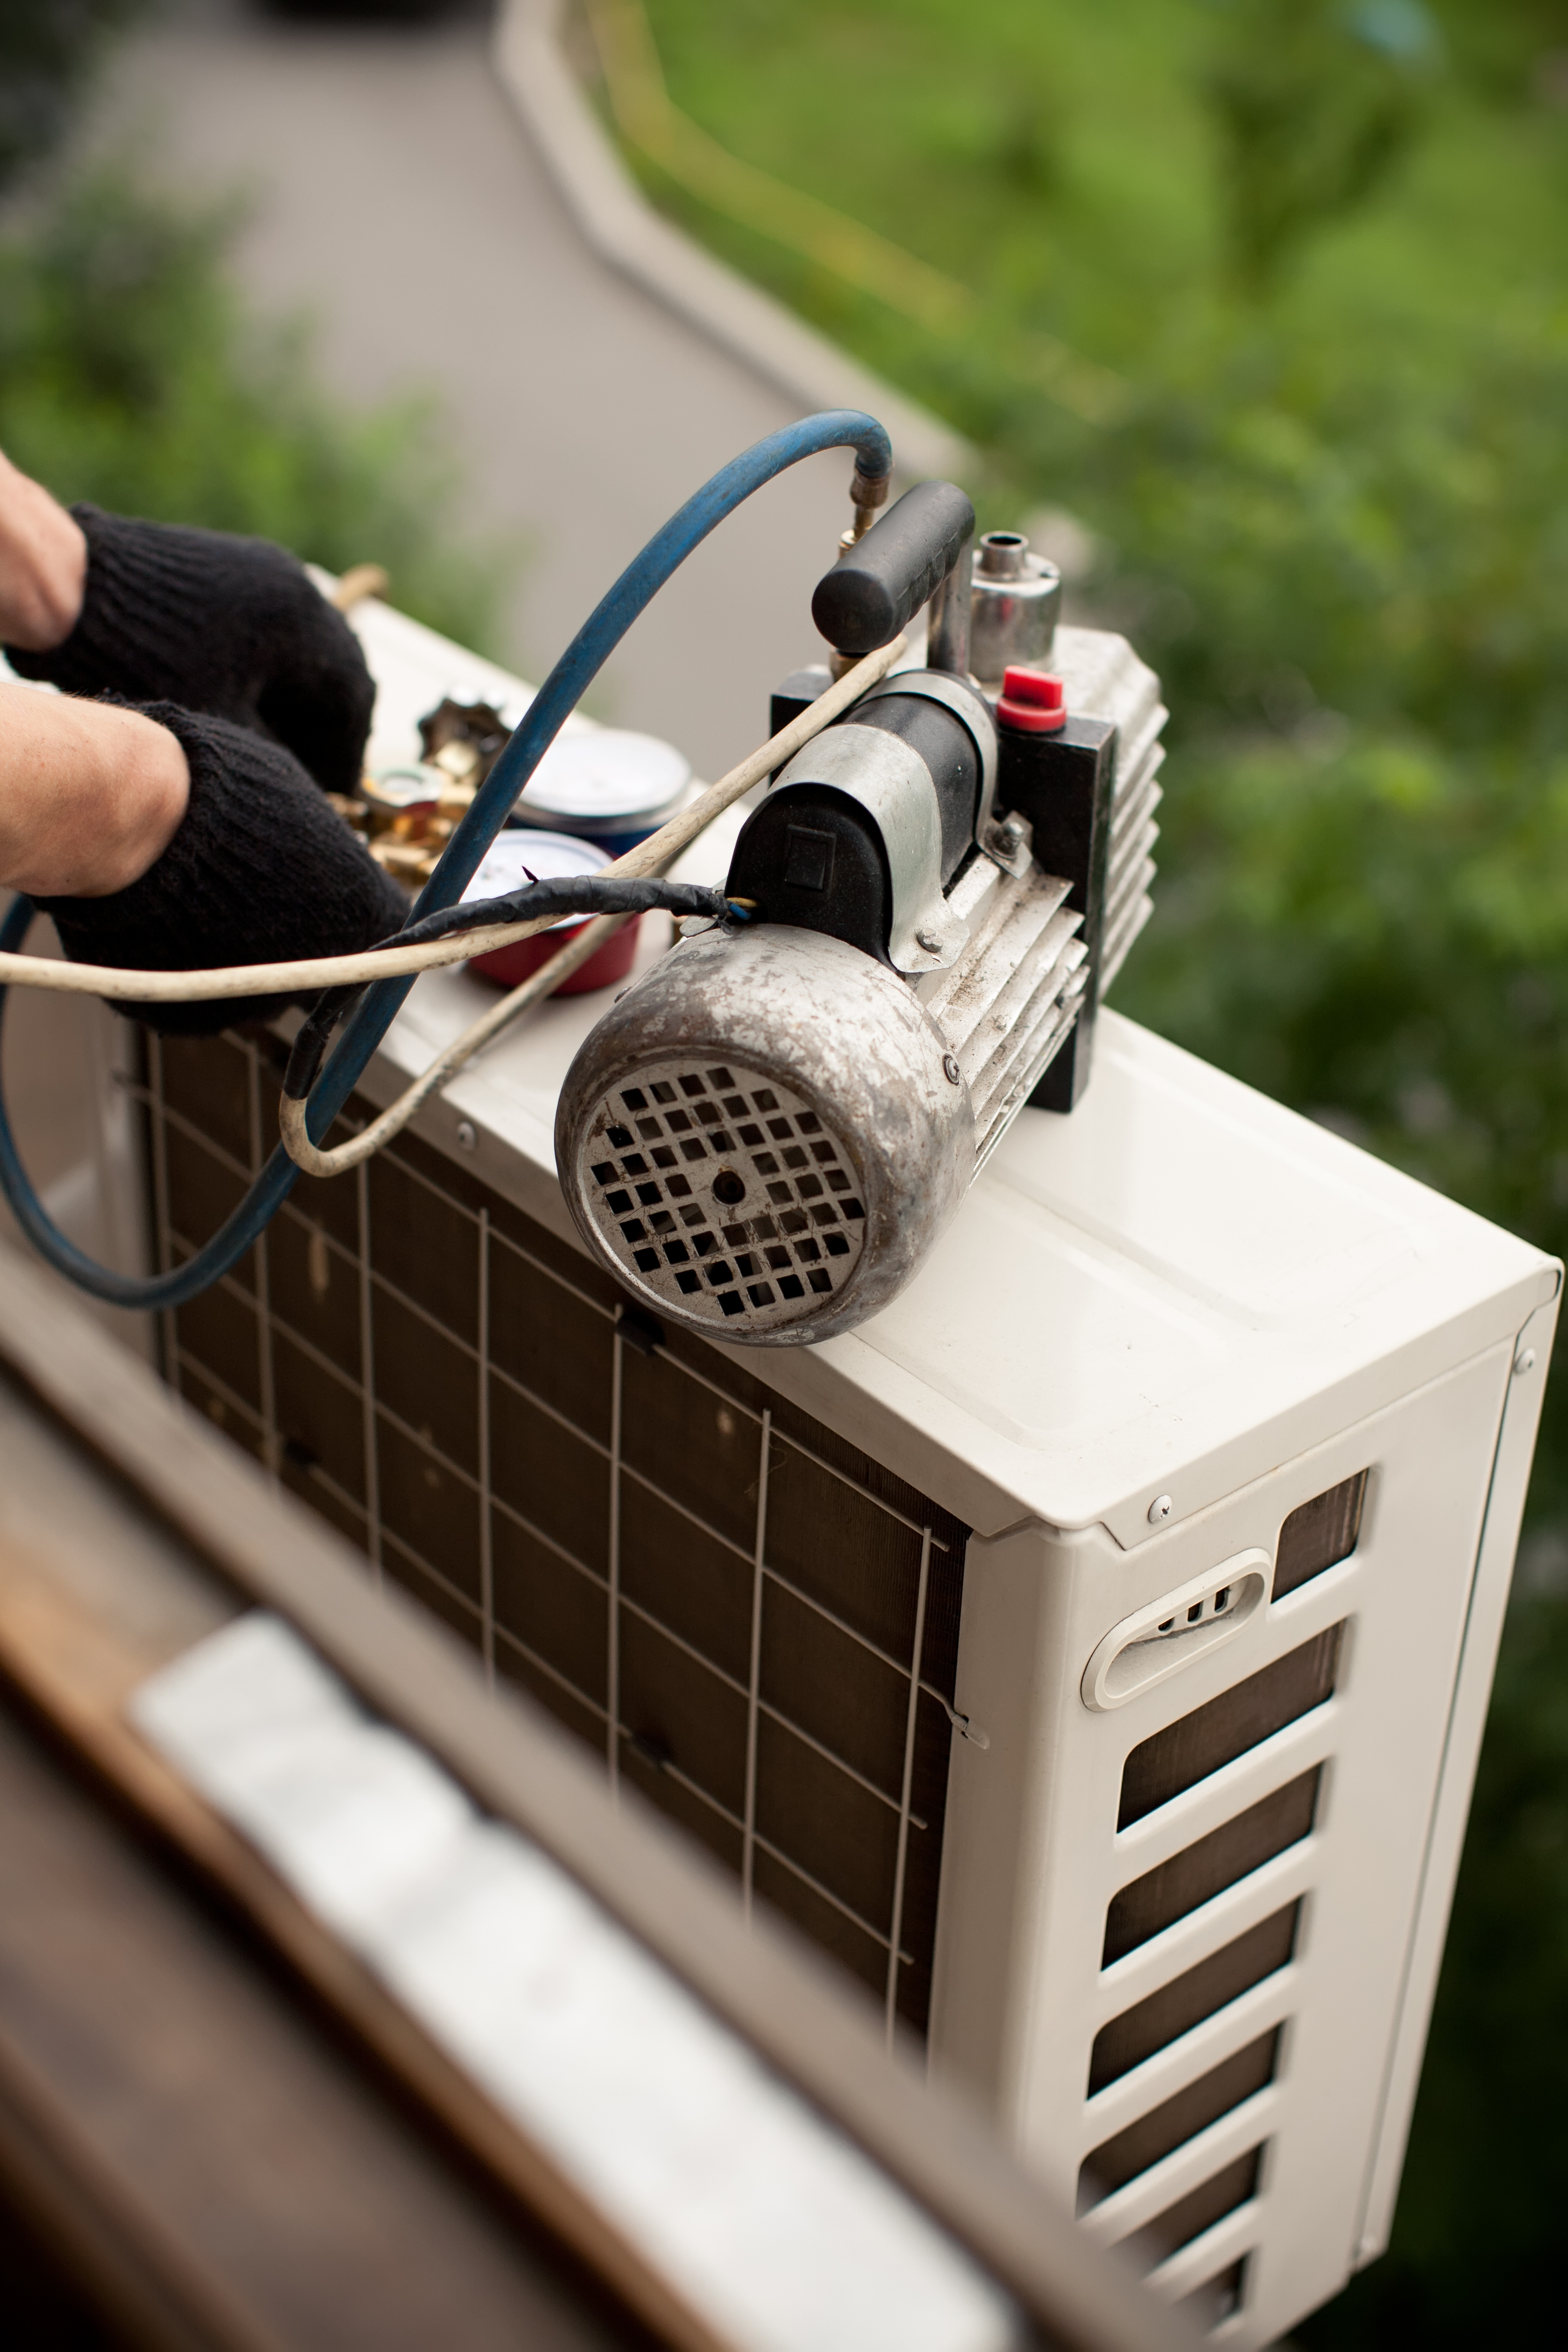 Air conditioning master preparing to install new air conditioner